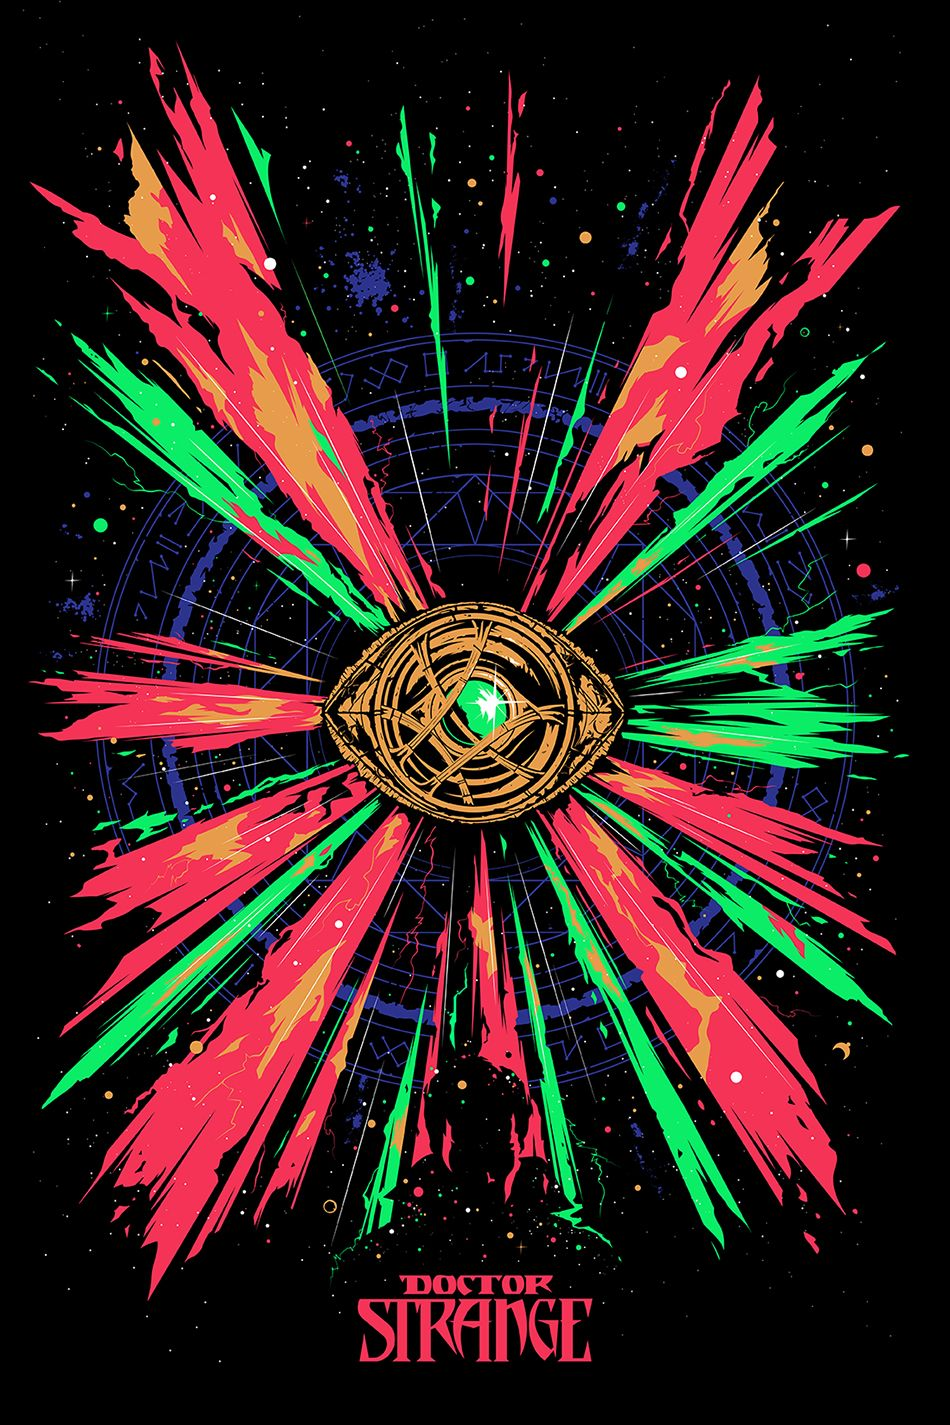 Doctor Strange Poster Created by Oli Riches POSTER